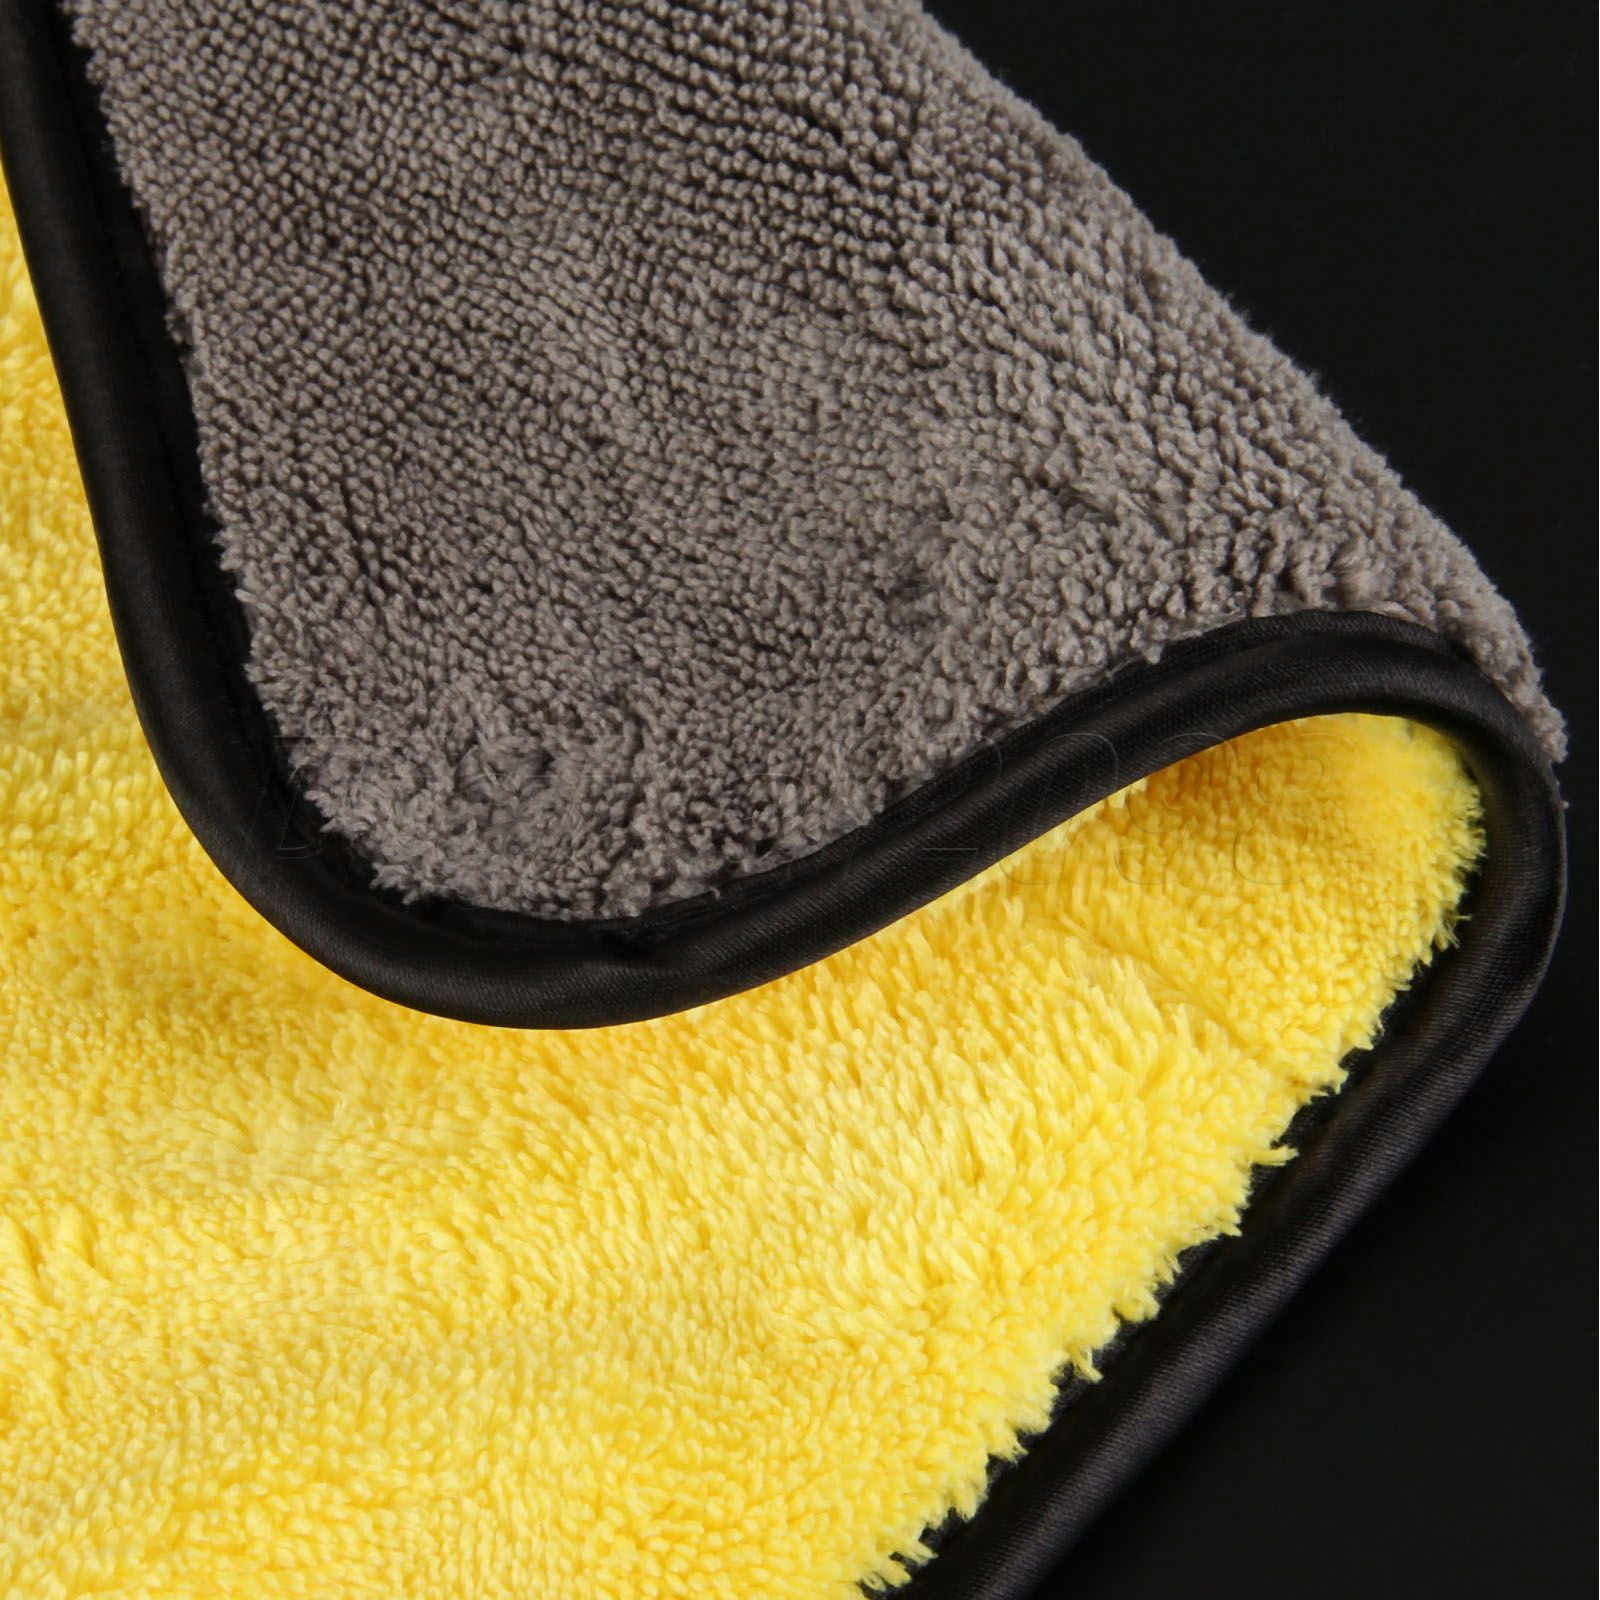 Image 4 - Yetaha 92*56cm Car Waxing Cloth Wash Microfiber Towel Car Cleaning Care Drying Detailing Polishing-in Sponges, Cloths & Brushes from Automobiles & Motorcycles